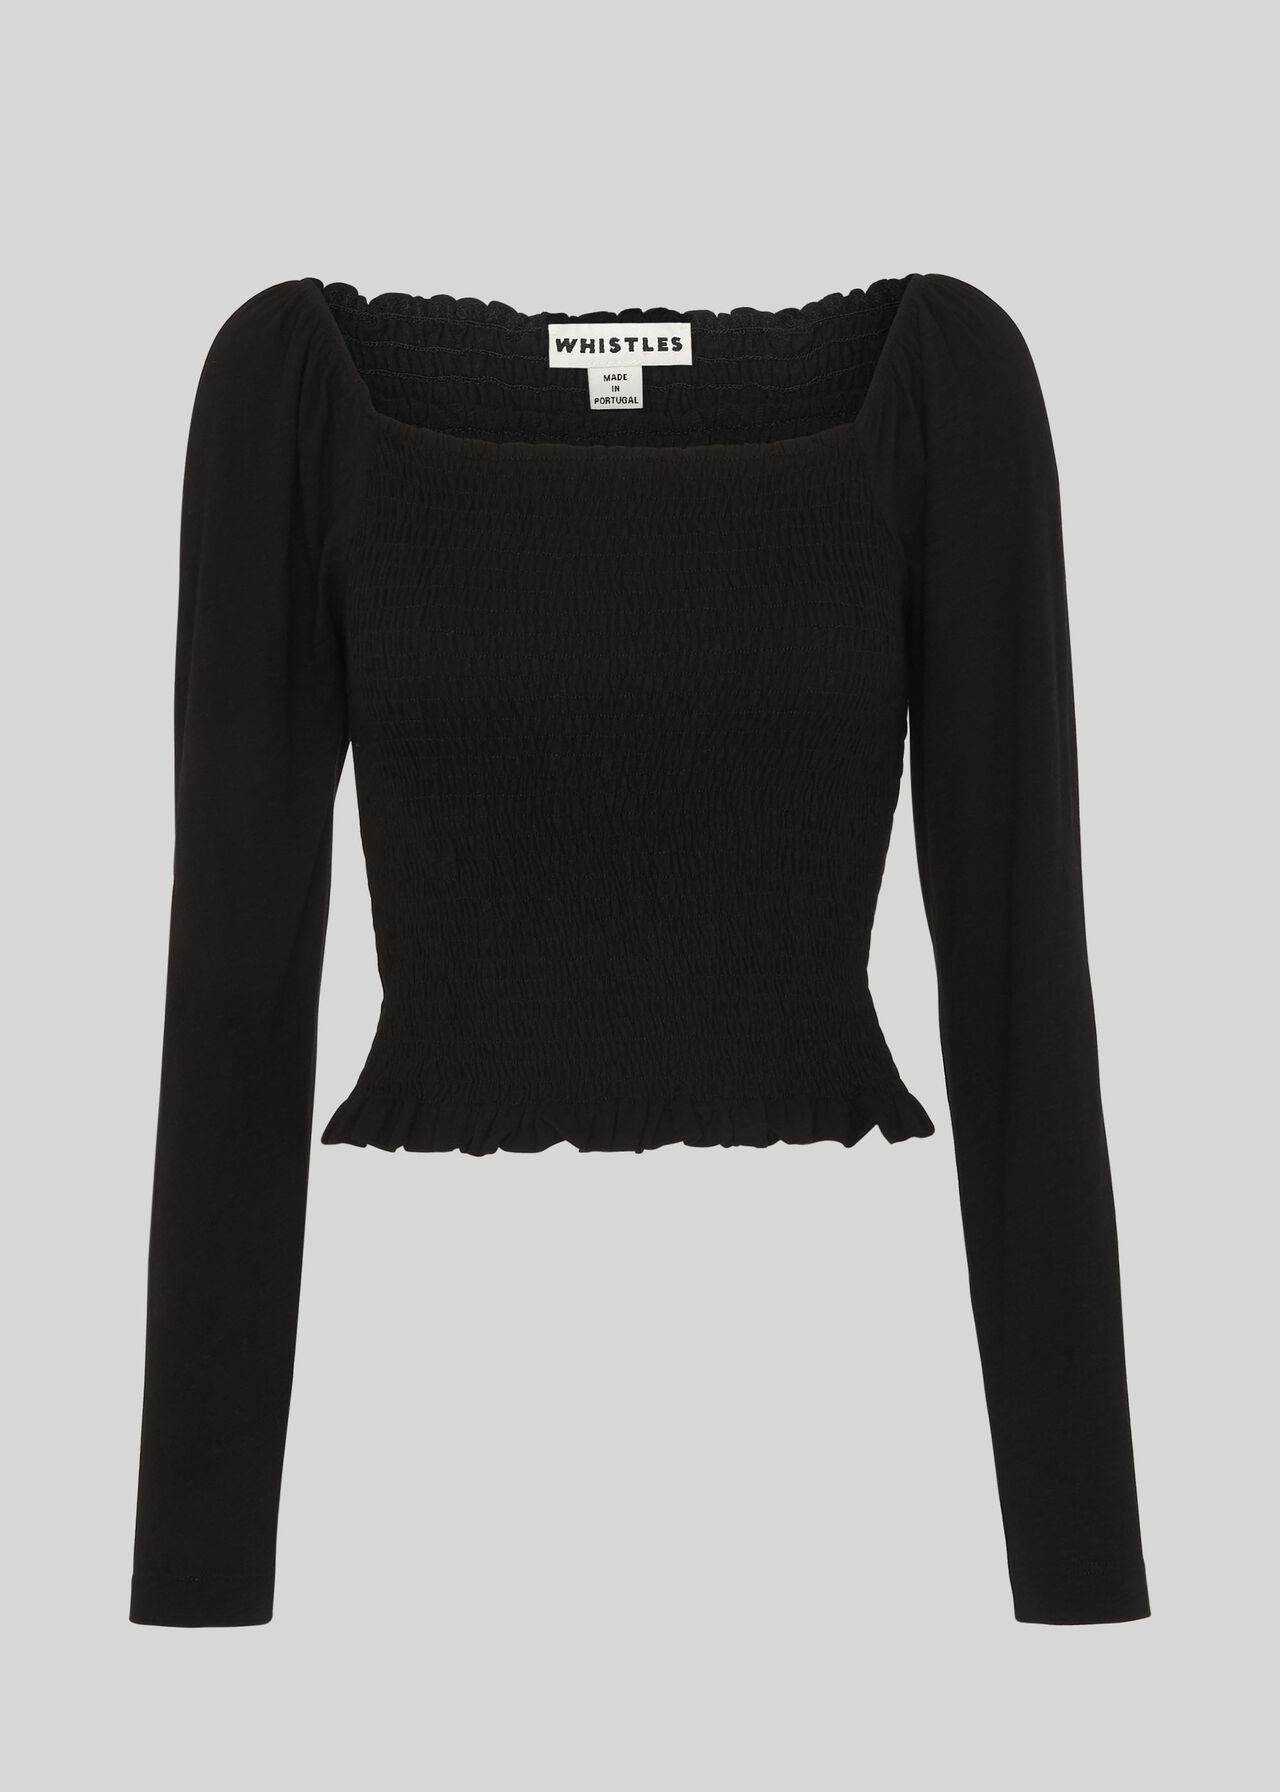 Square Neck Rouched Top Black